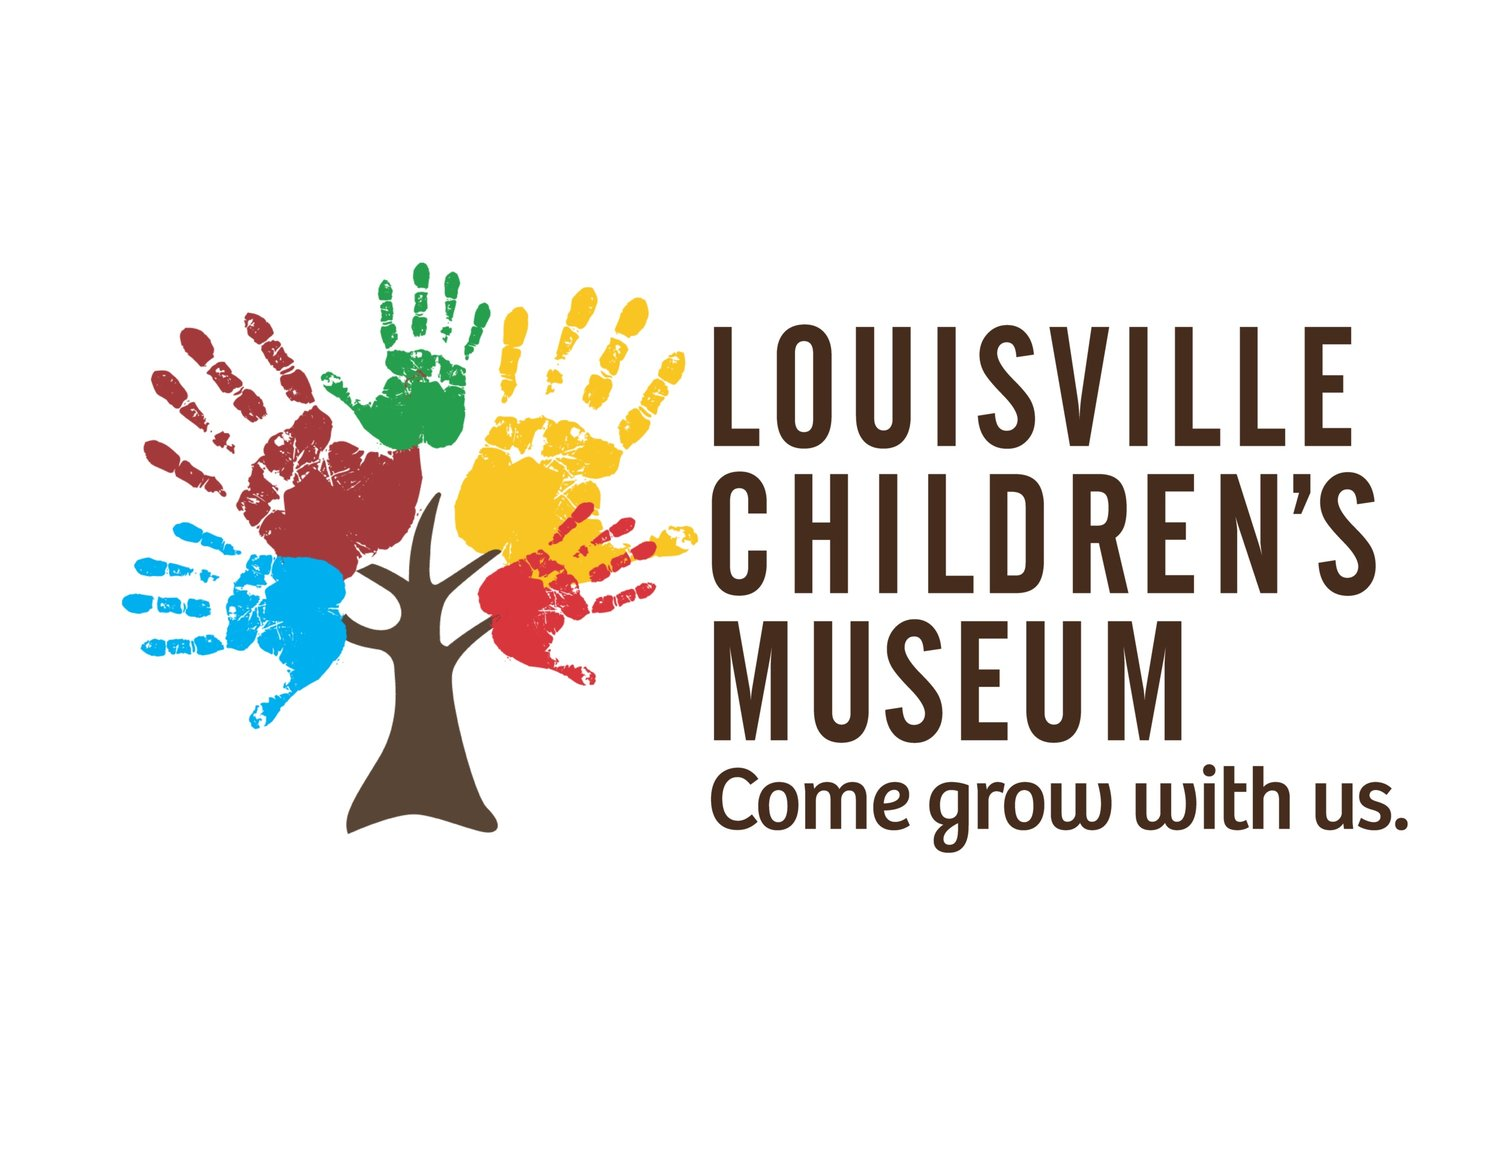 LOUISVILLE CHILDREN'S MUSEUM